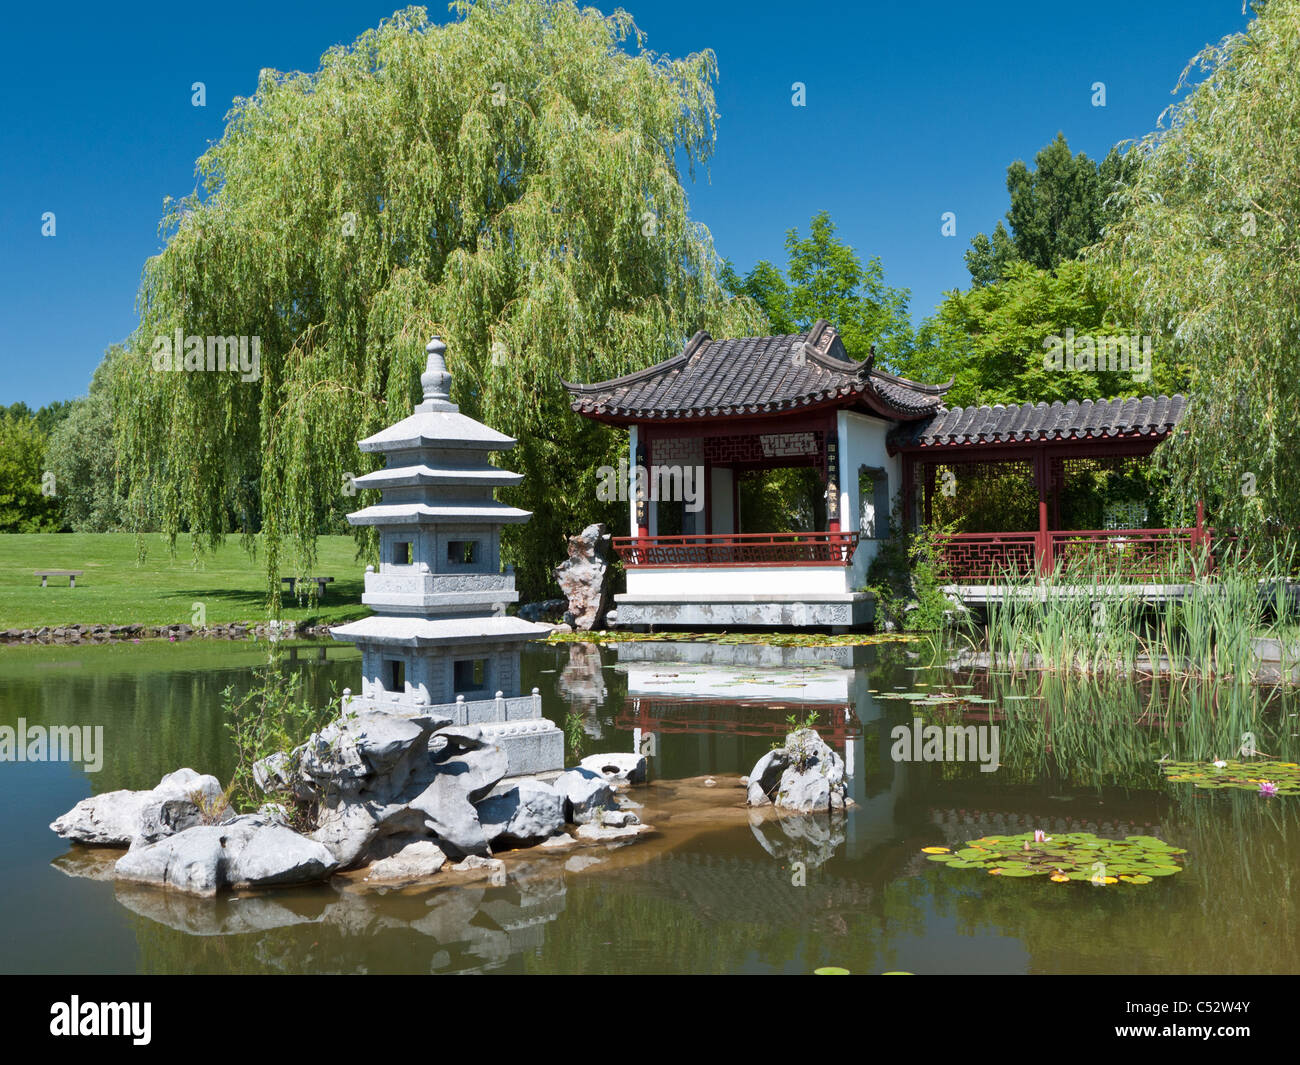 Garten berlin  The Tea Pavilion at the Chinese Garden at the Garten der Welt in ...